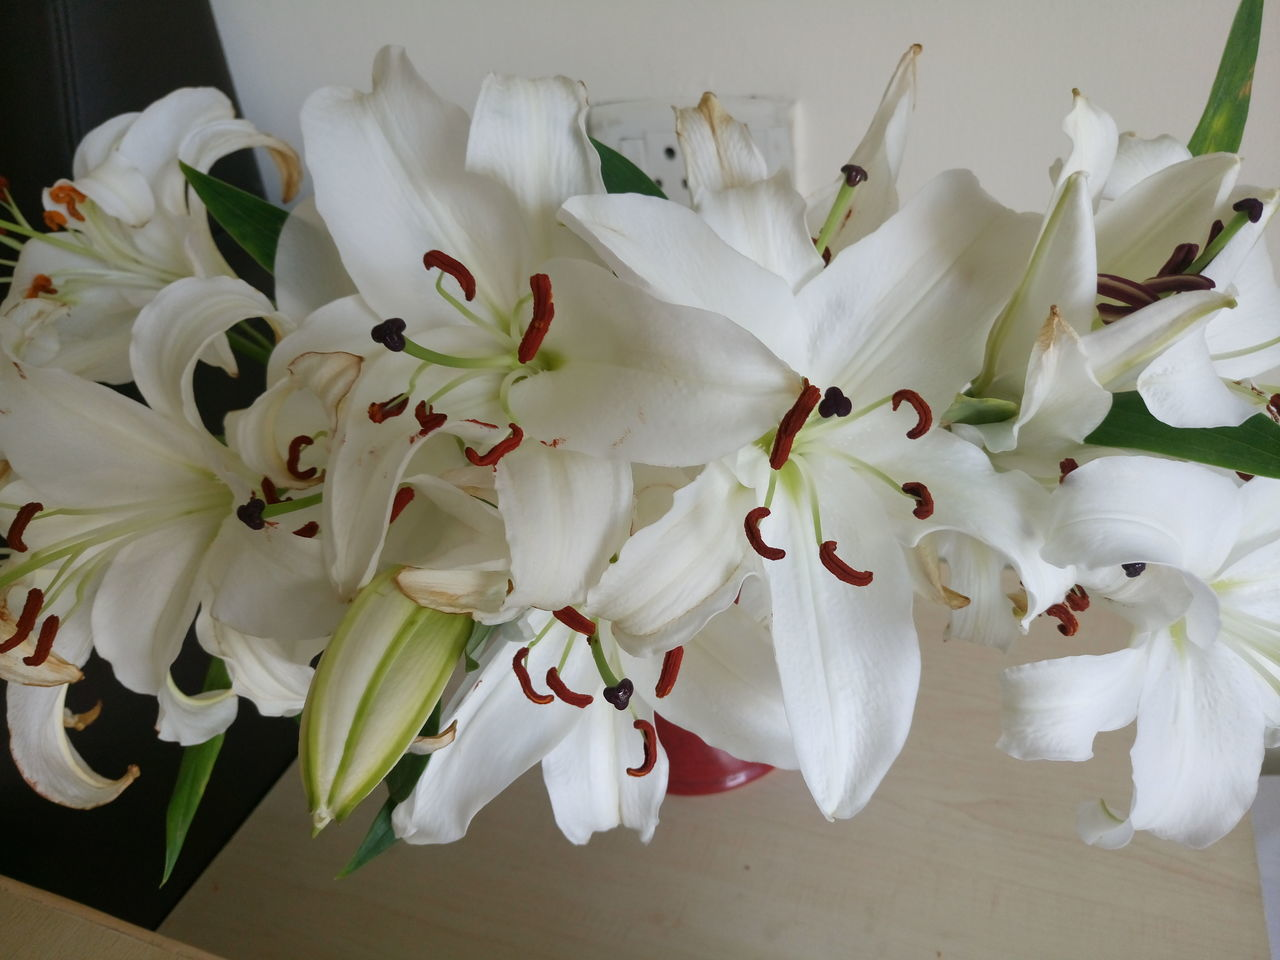 flower, petal, white color, beauty in nature, fragility, flower head, nature, freshness, no people, close-up, growth, indoors, day